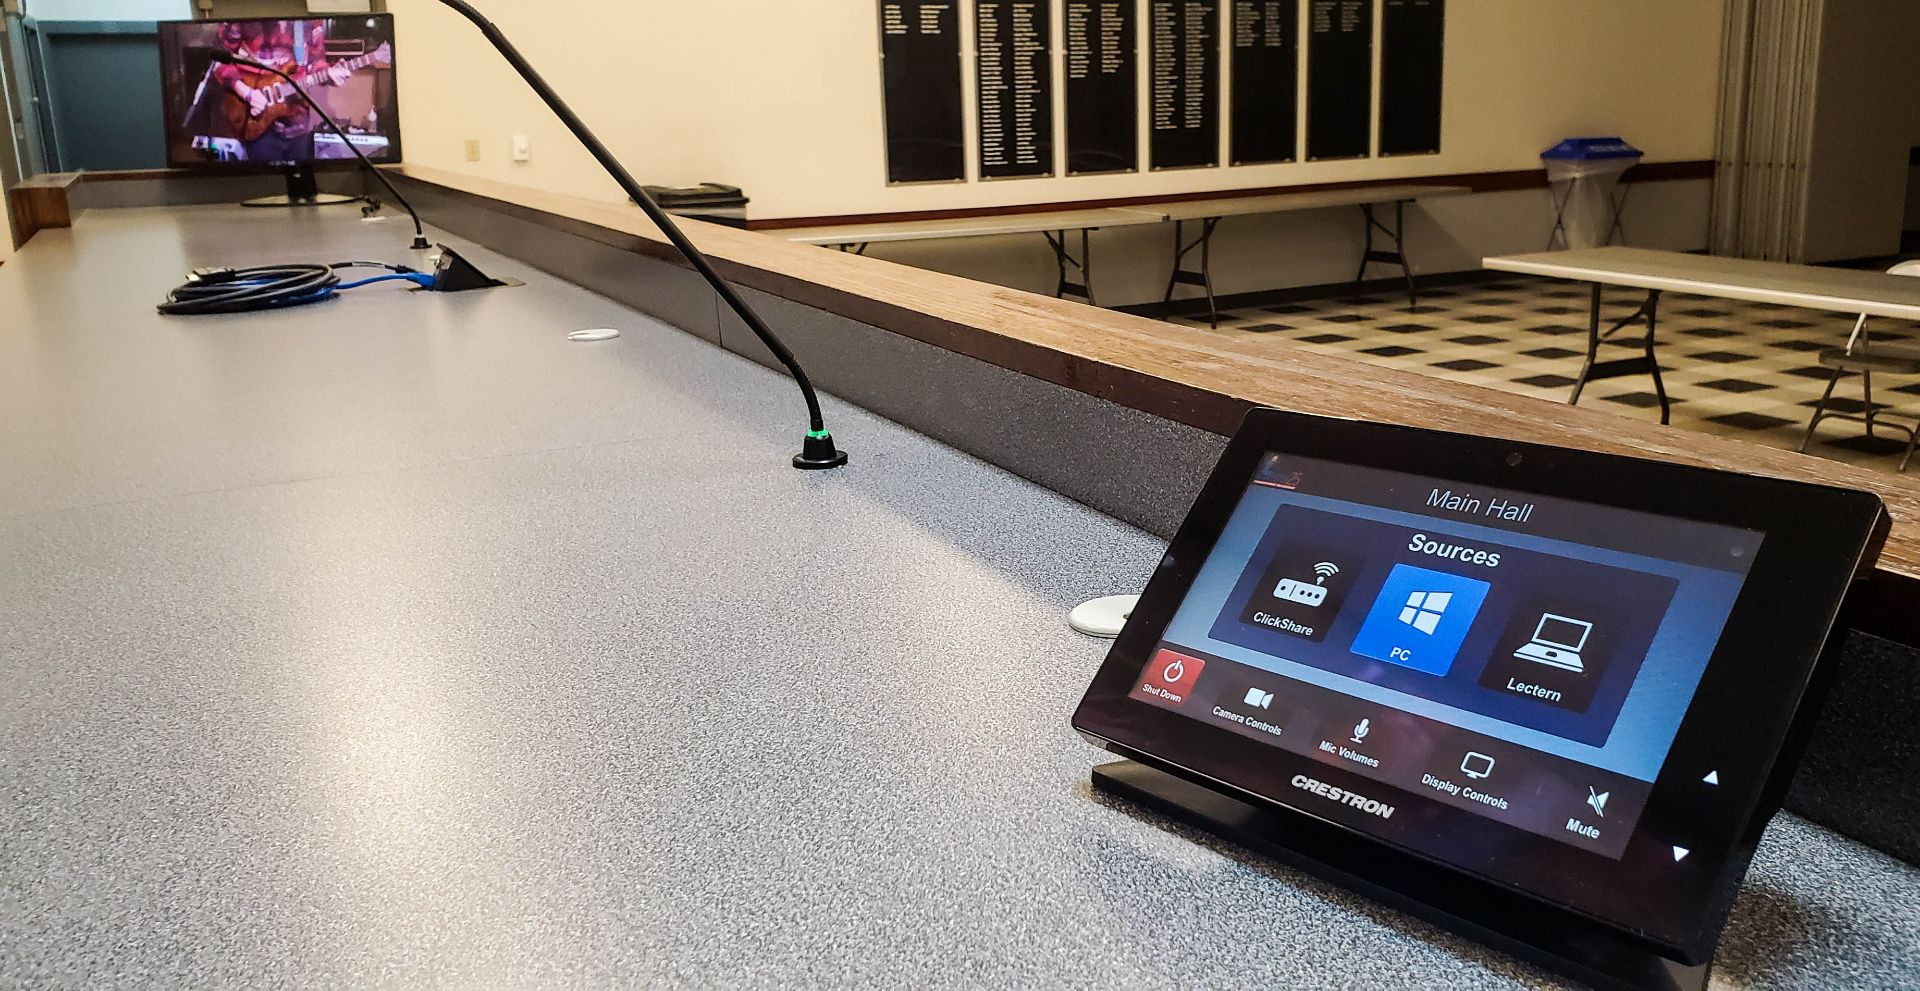 Local Union 25 - Plumbers & Pipefitters - Desk with Touchscreen Controller